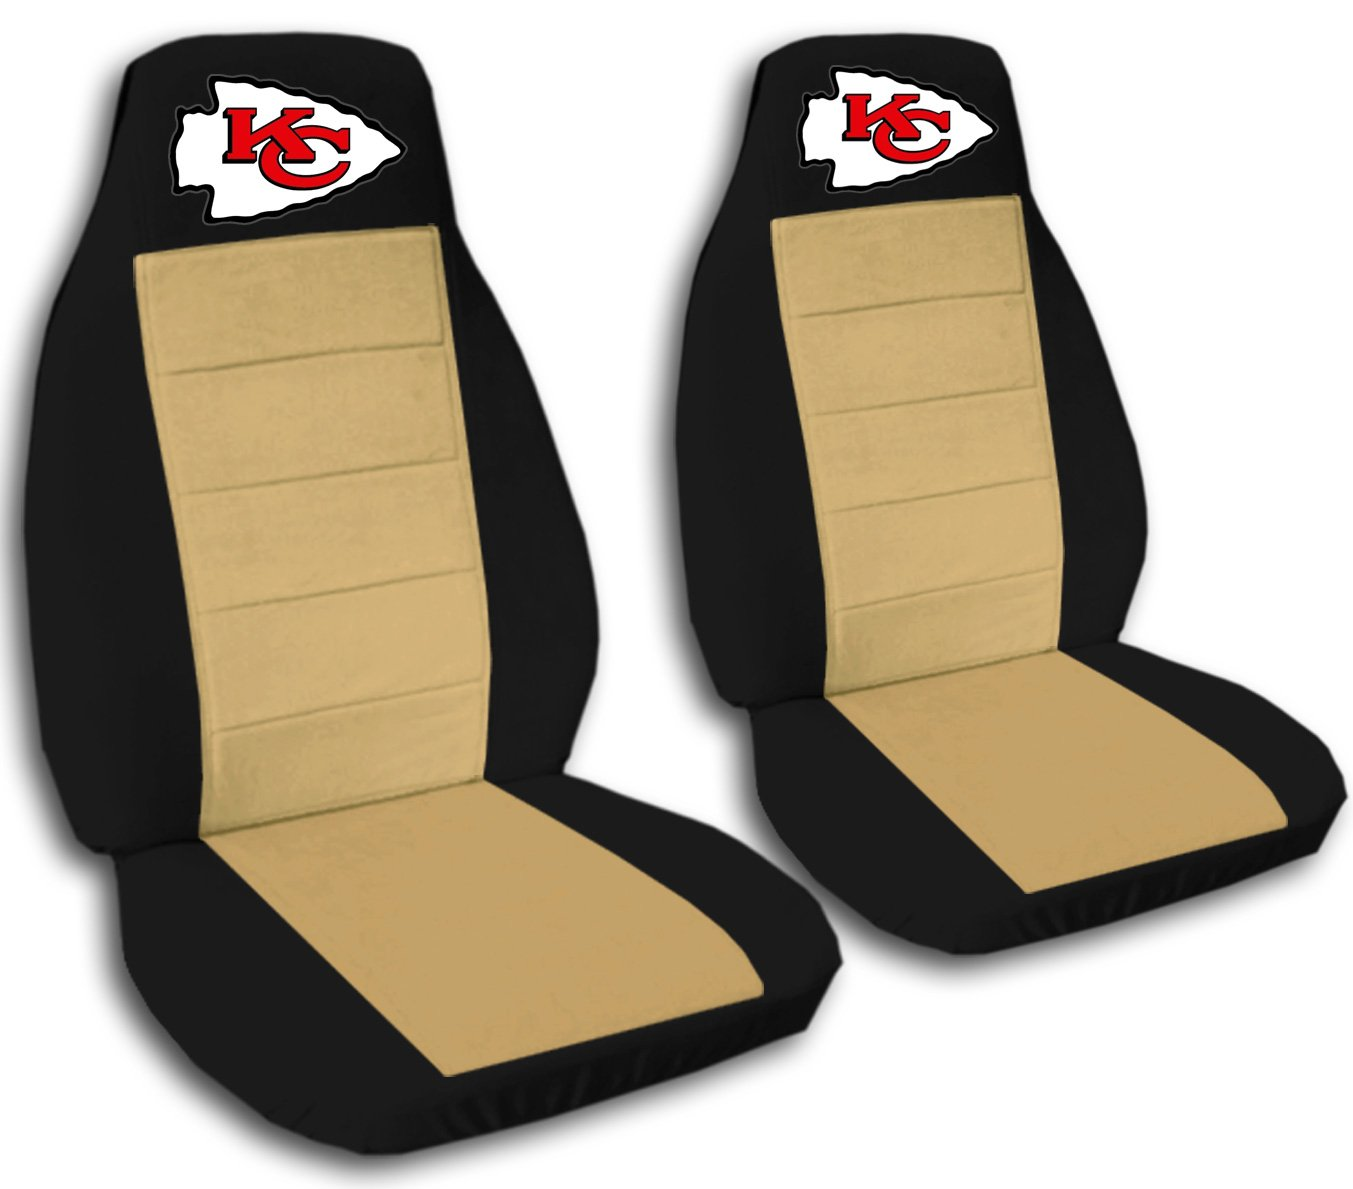 2 Black and Tan Kansas City seat covers for a 2007 to 2012 Chevrolet Silverado. Side airbag friendly. by Designcovers (Image #1)